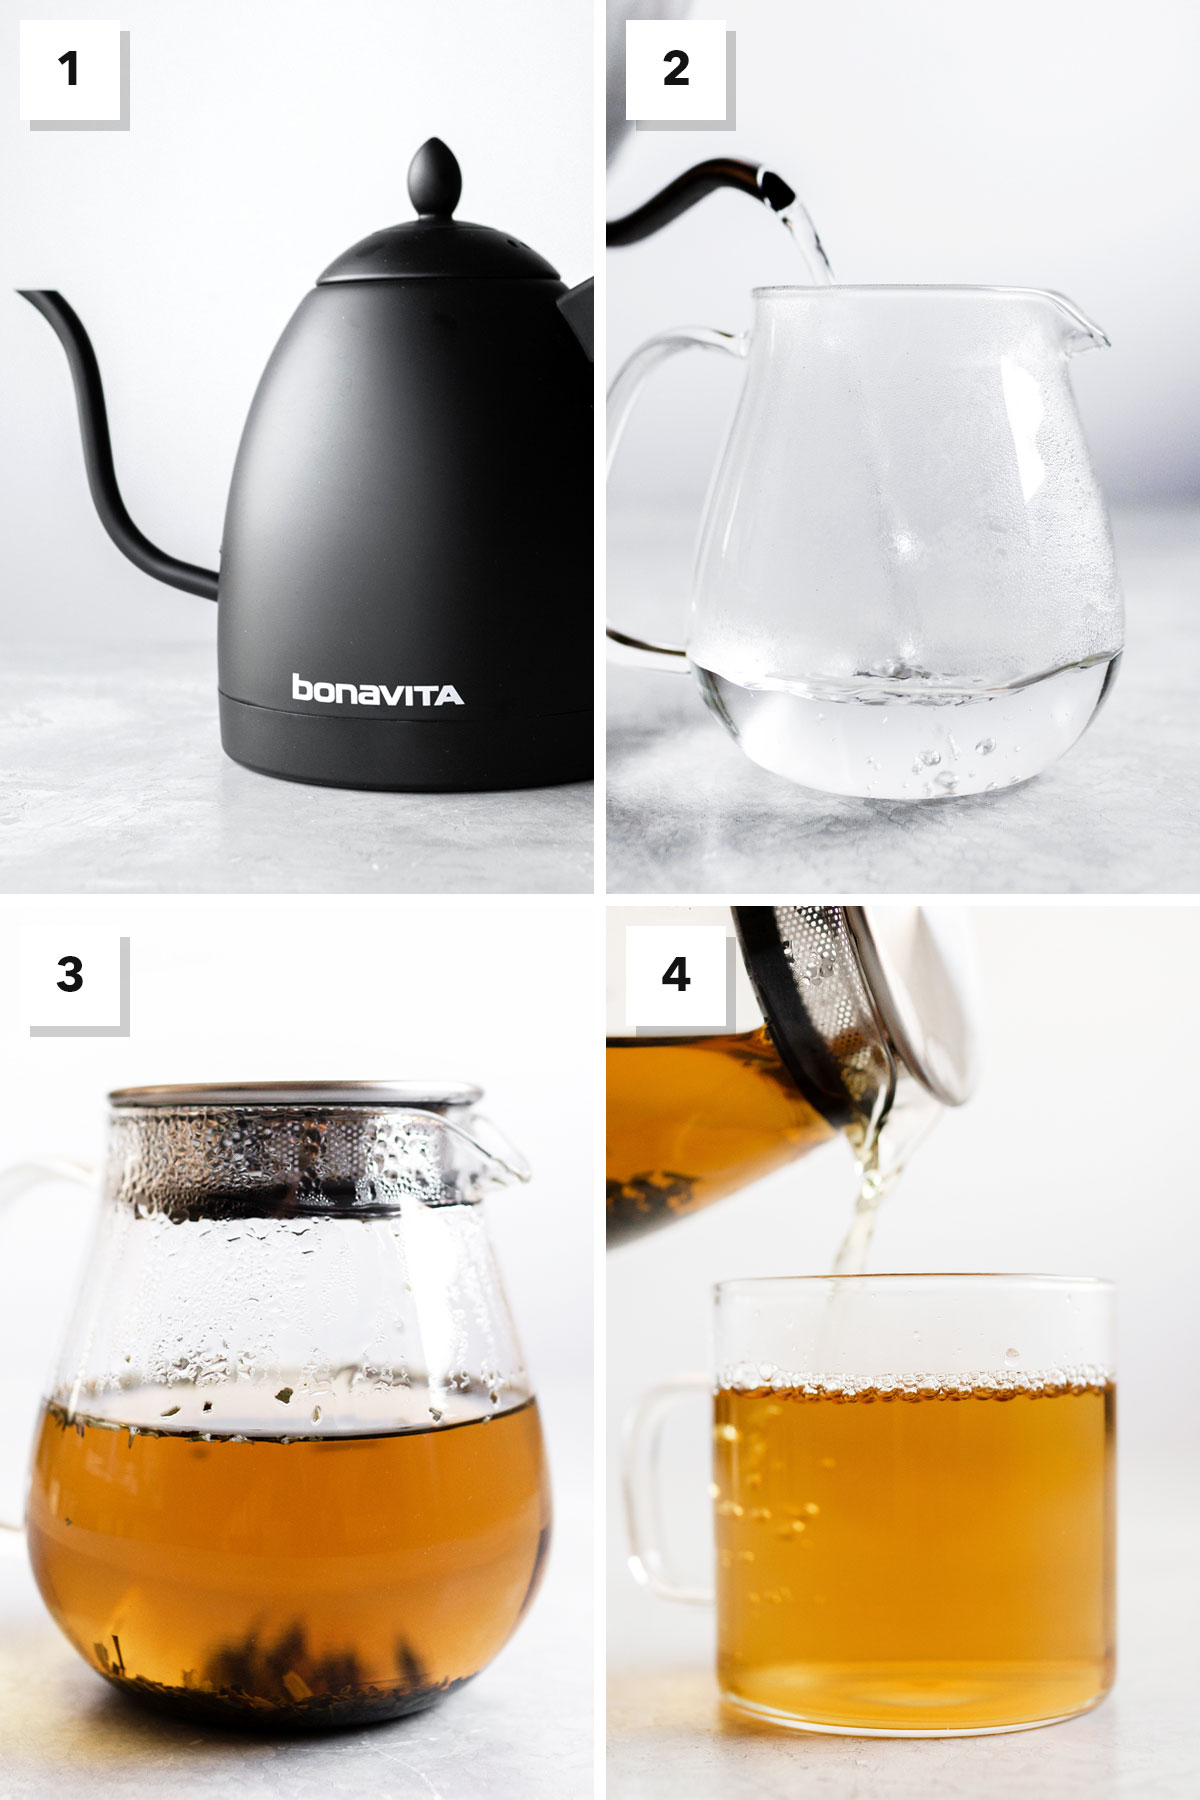 Four photo collage showing steps on how to make peppermint tea properly.